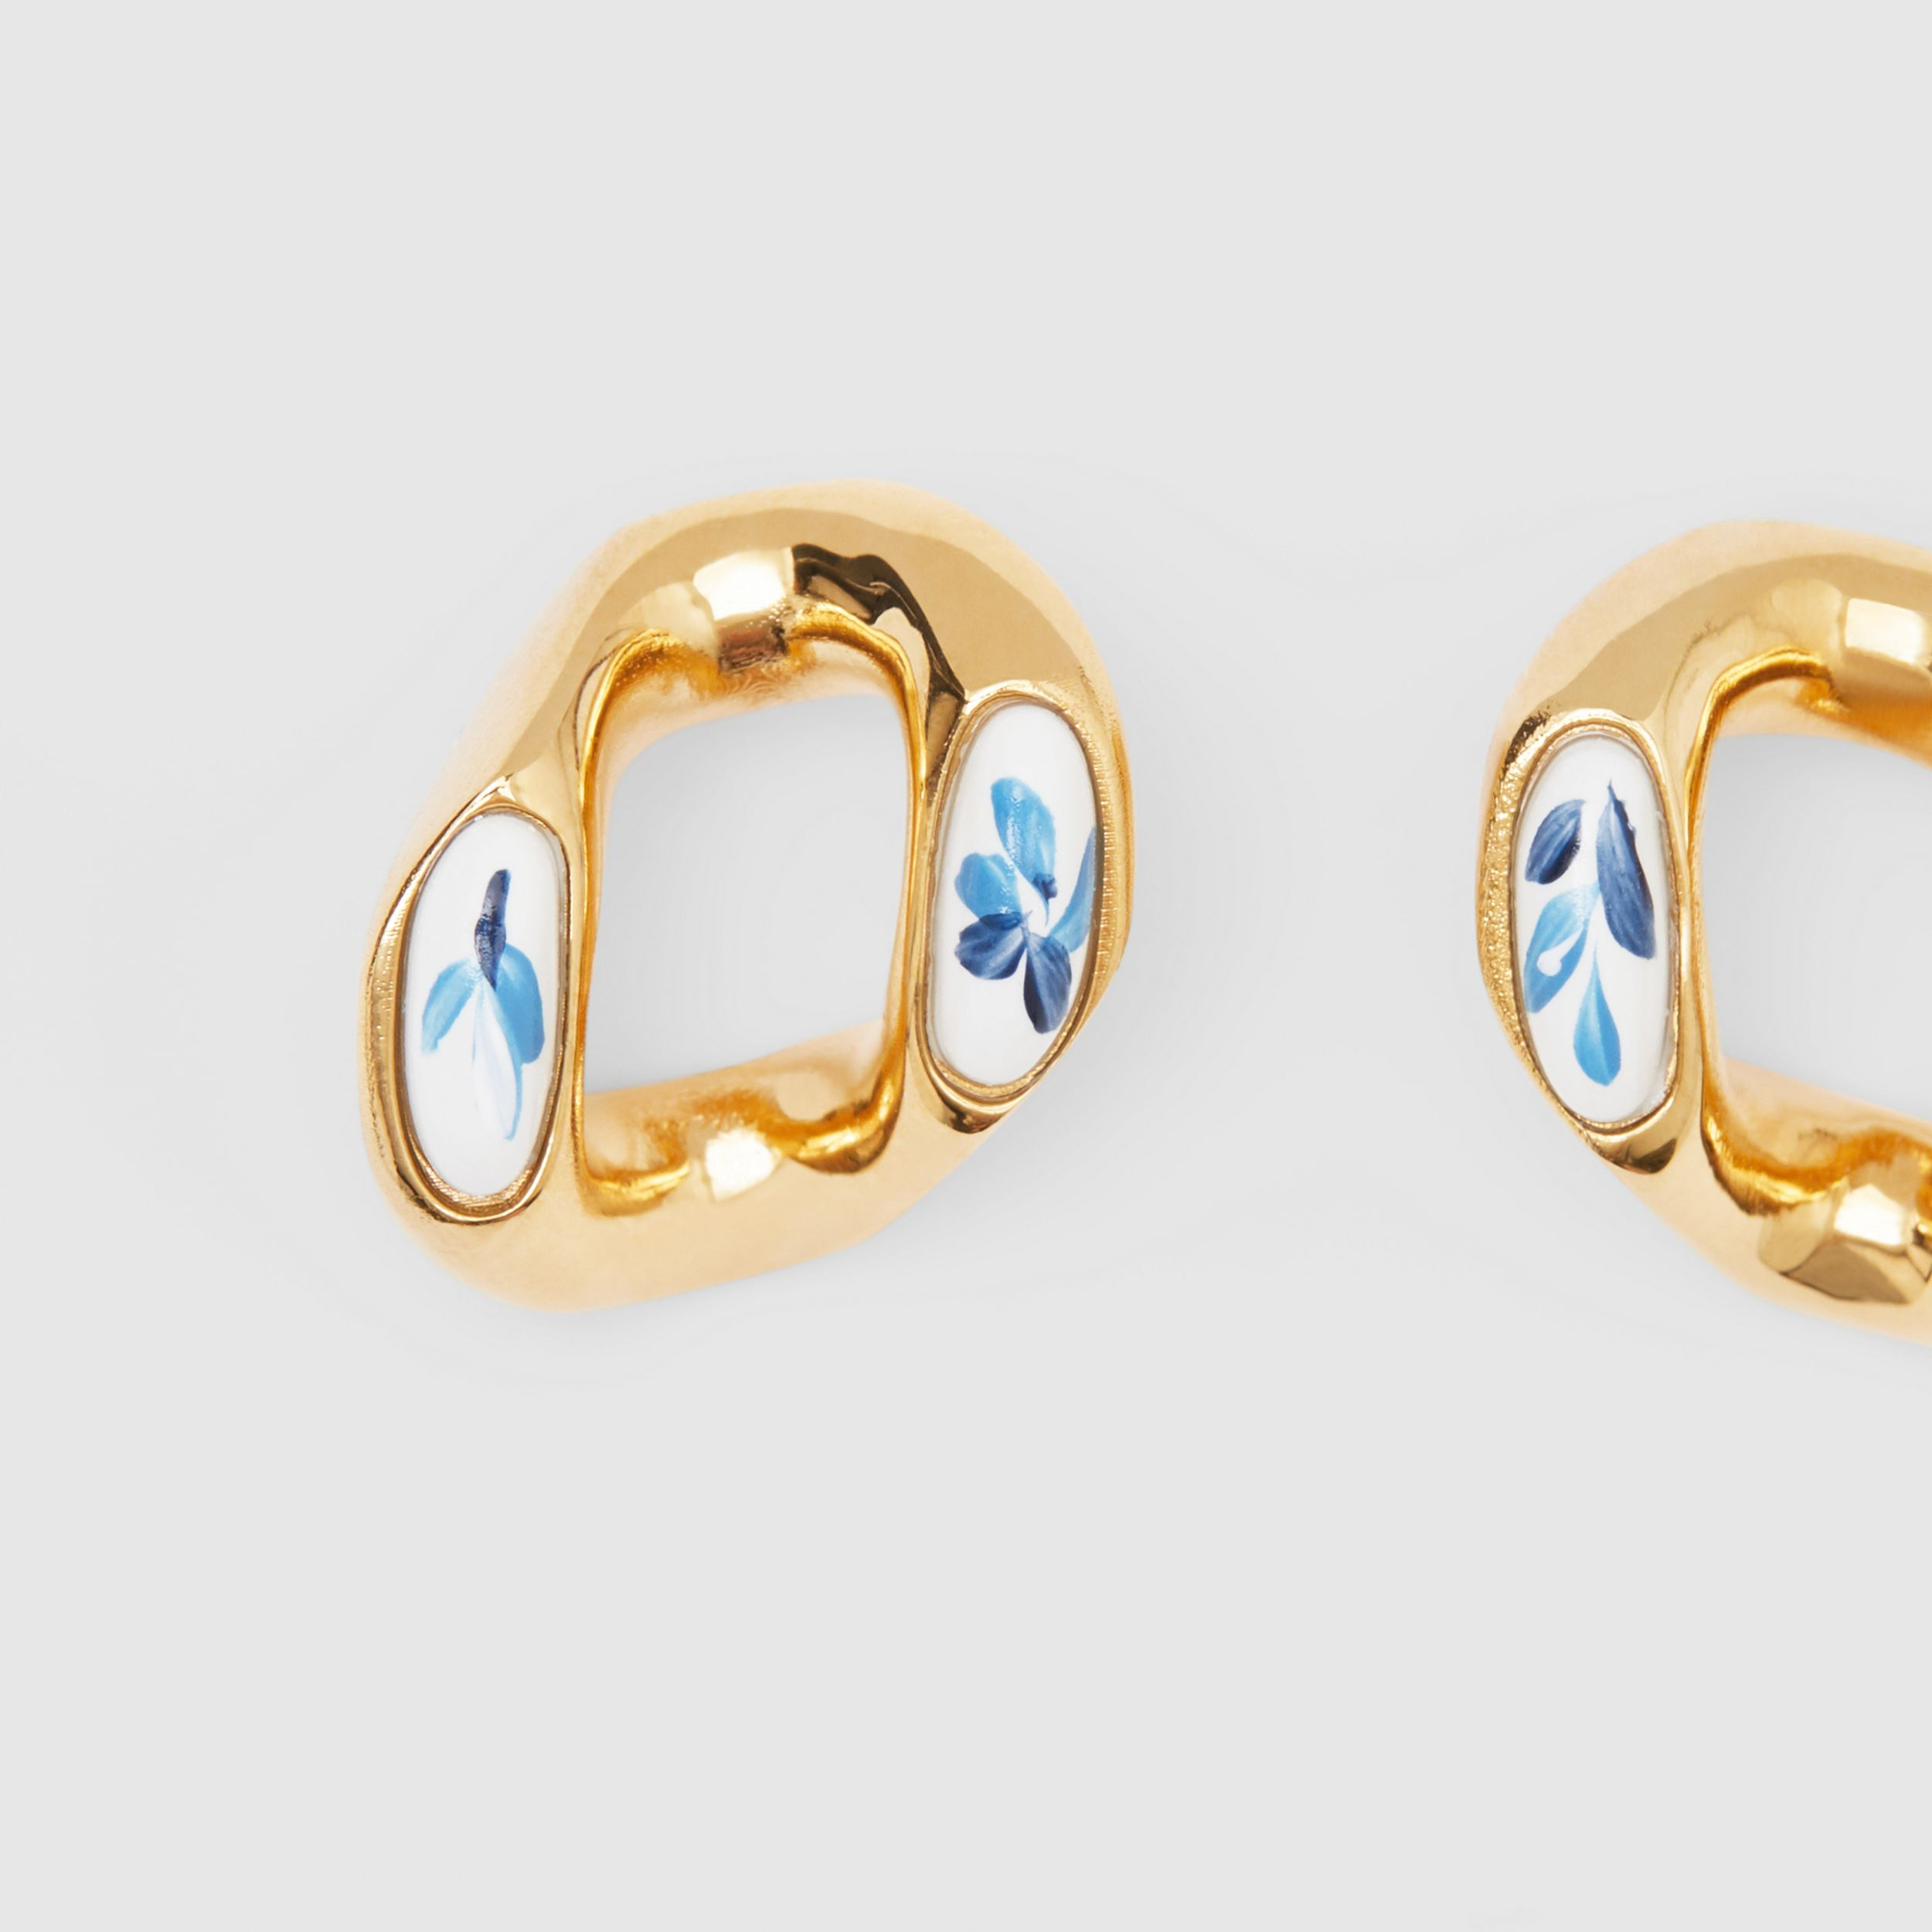 Enamel Detail Gold-plated Chain-link Earrings in Light Gold/white/blue - Women | Burberry - 2